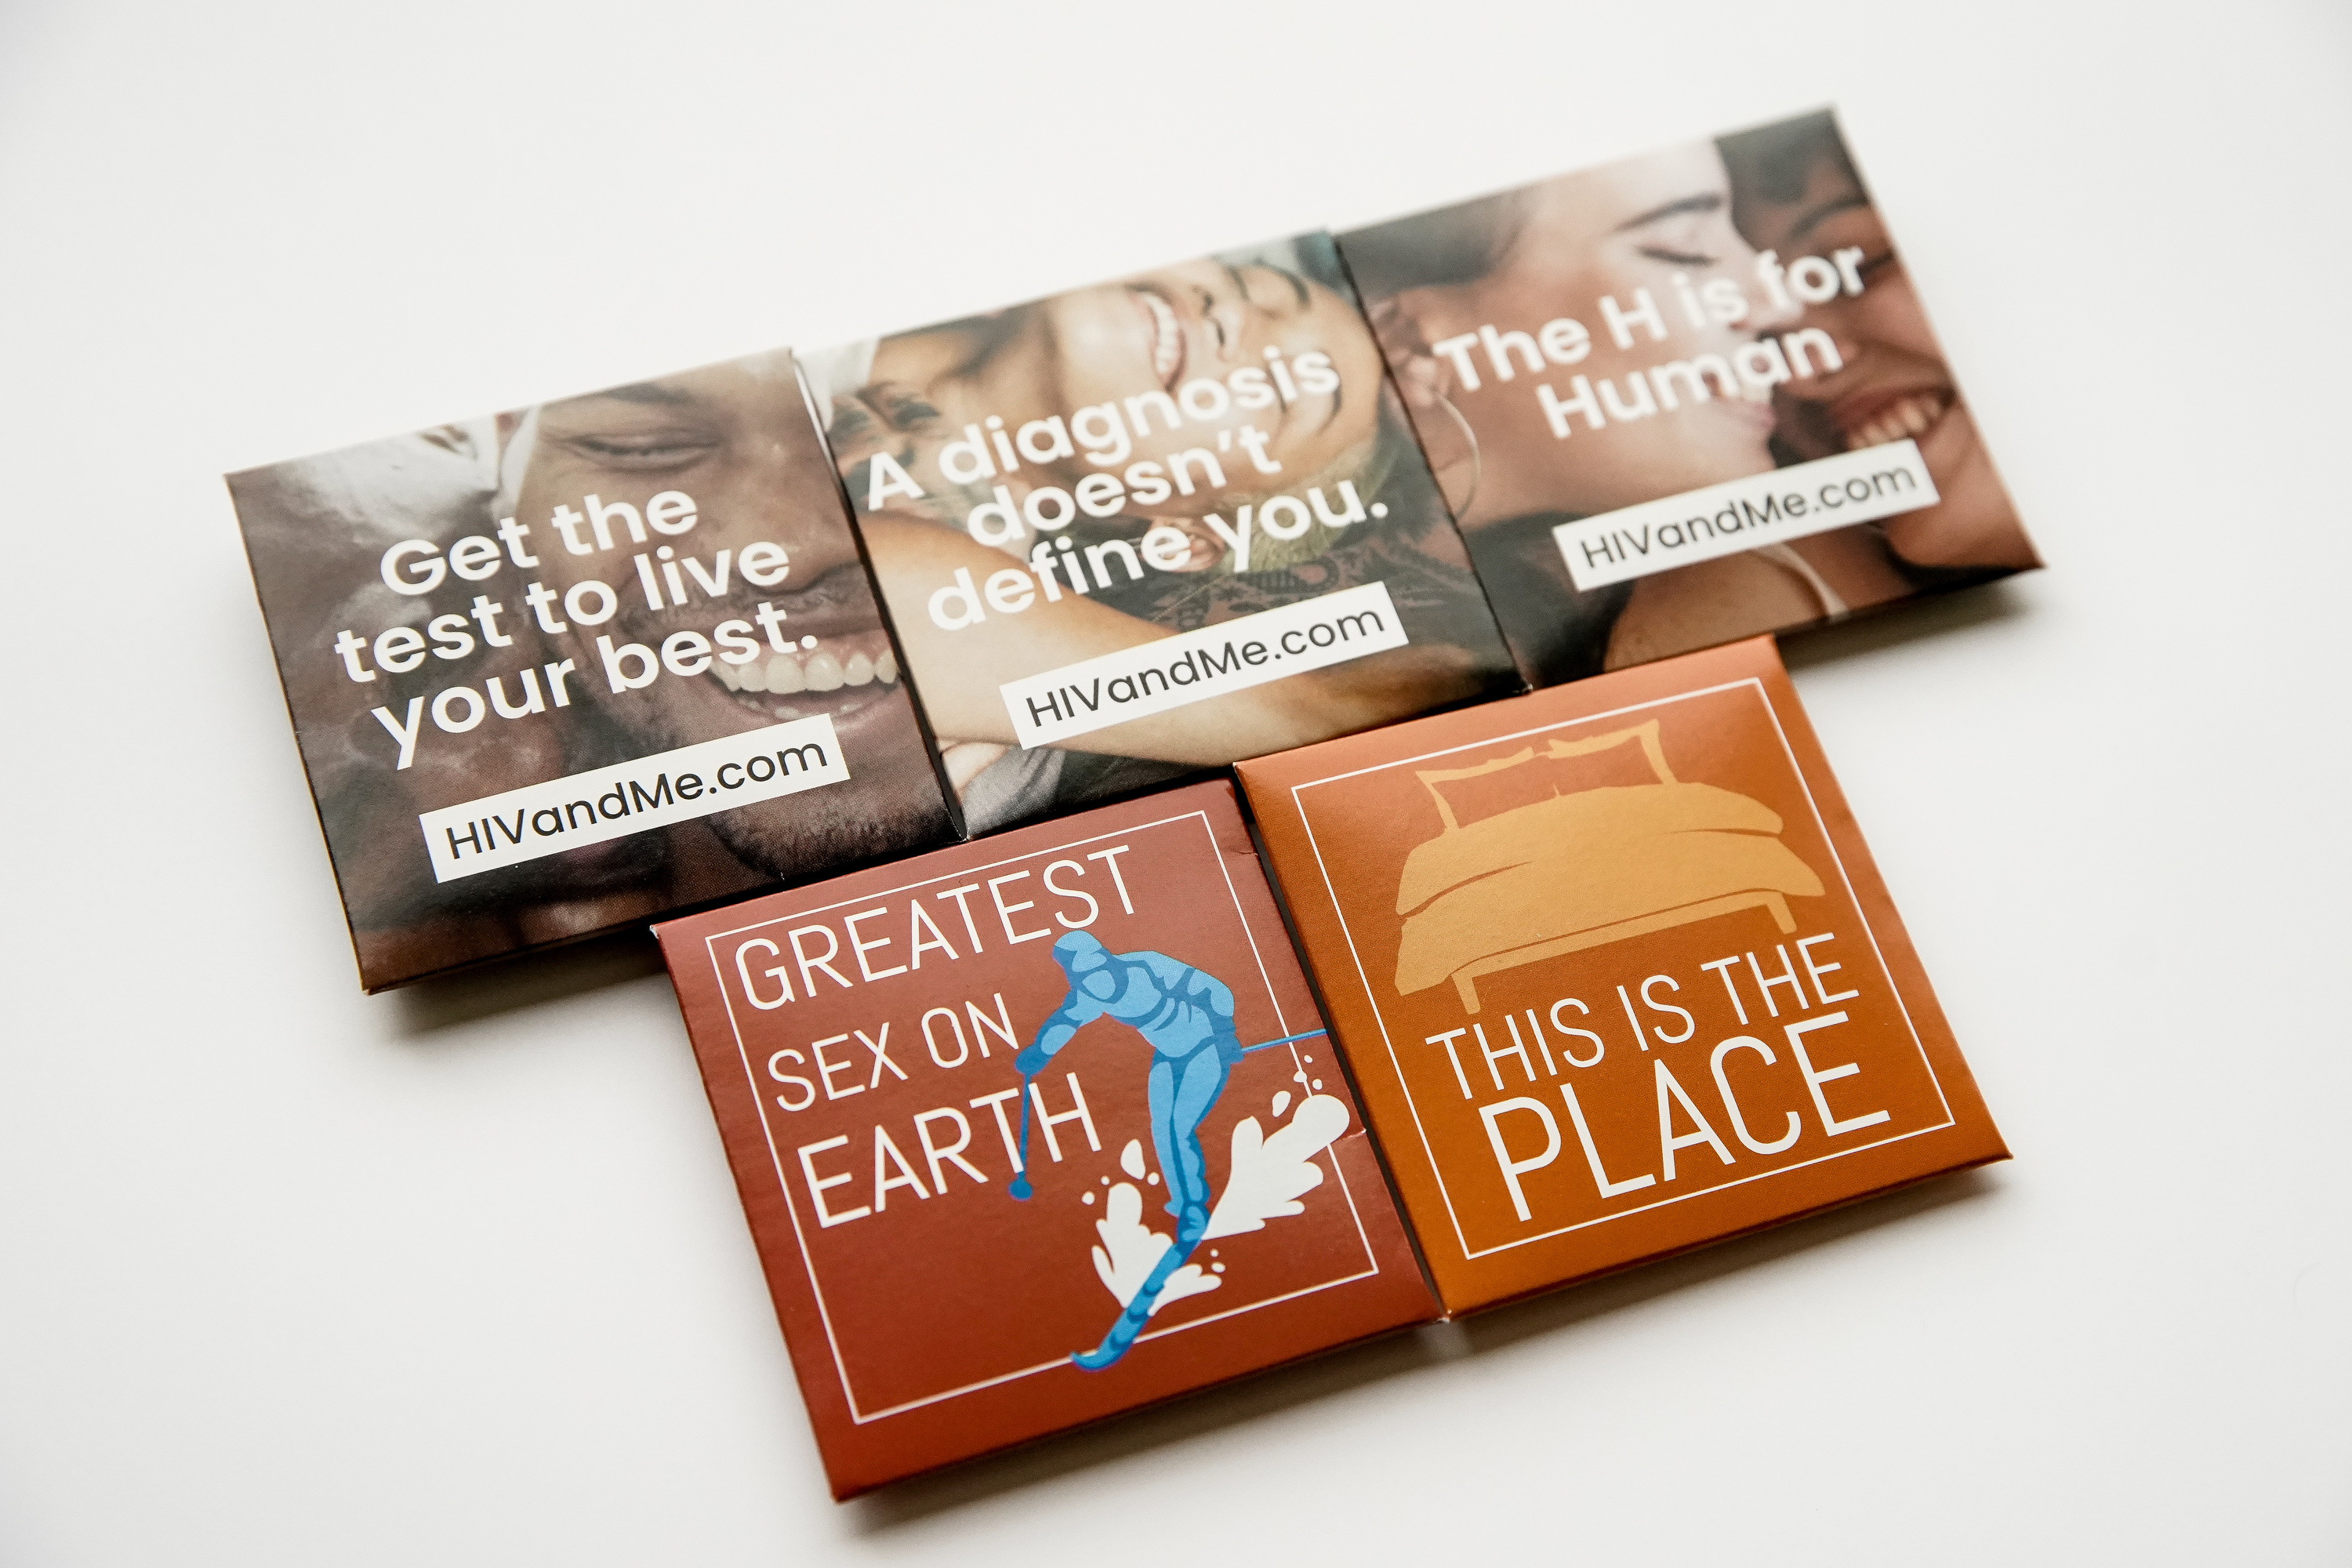 Condom packages developed by the Utah Department of Health for an HIV awareness campaign are pictured in Salt Lake City on Thursday, Jan. 16, 2020. Gov. Gary Herbert asked the department to stop distributing thecondomsbecause they contain potentially offensive slogans.